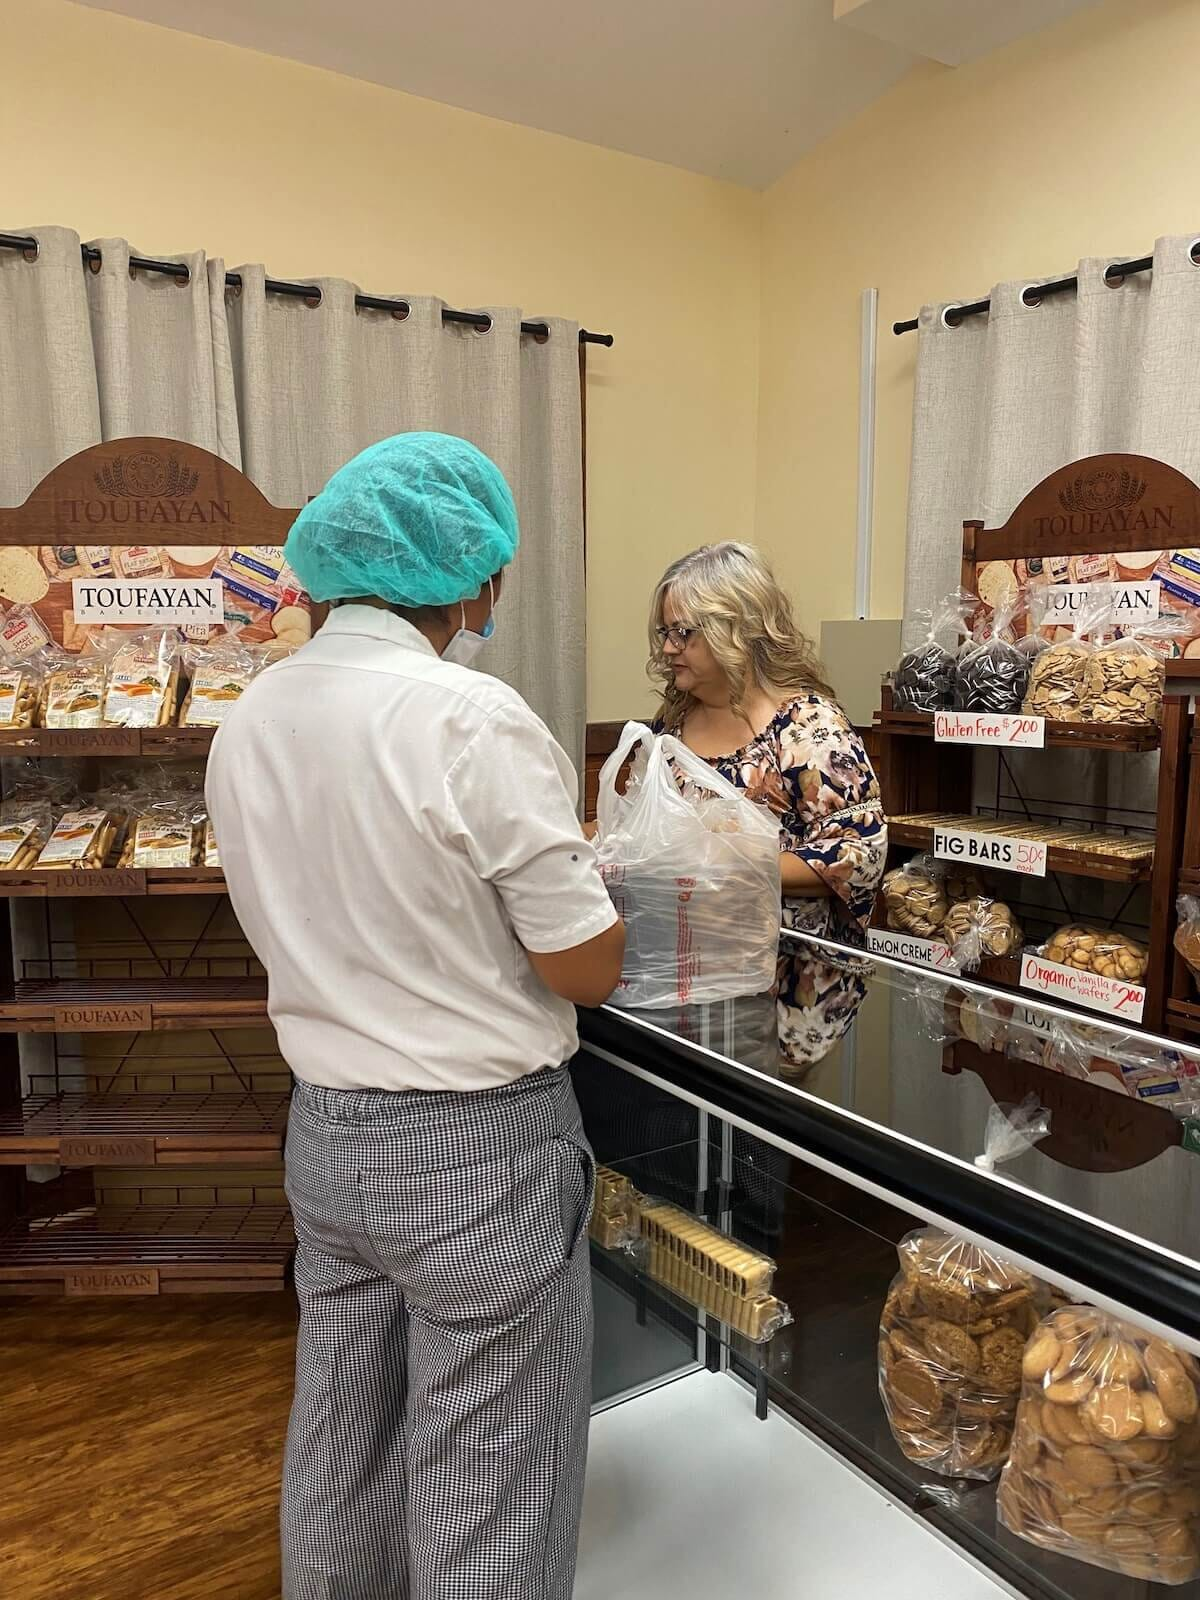 customer purchasing baked goods from store